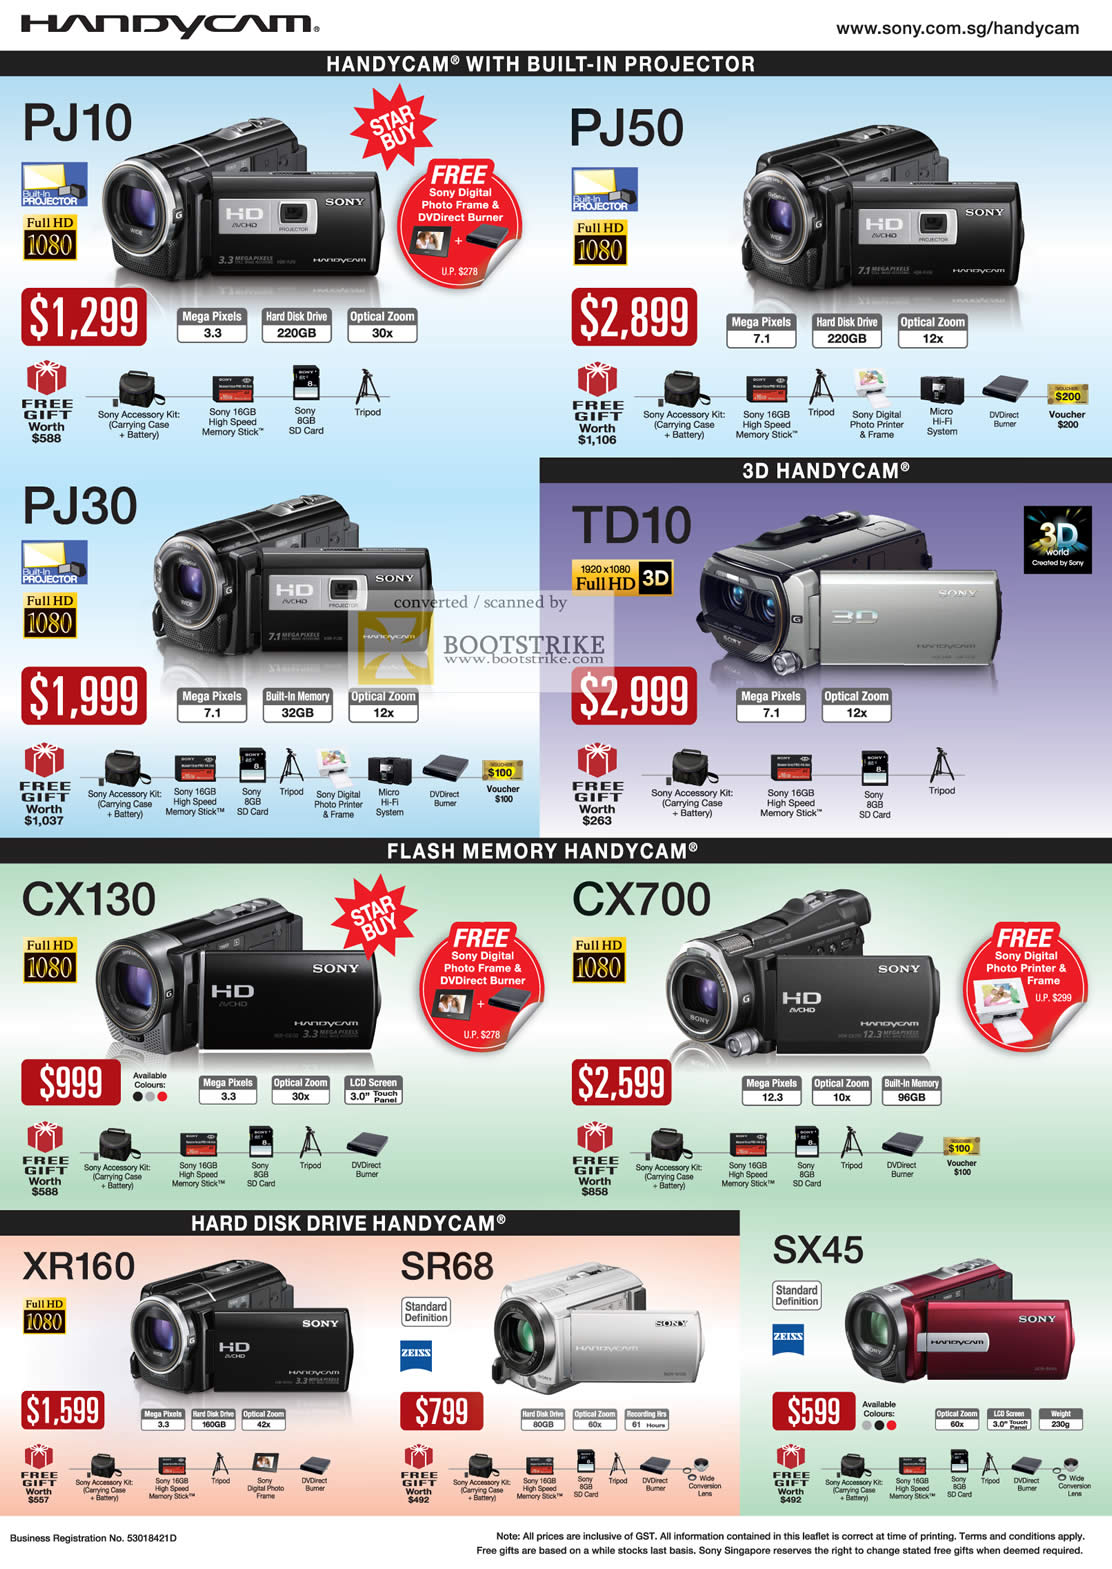 2011 price list image brochure of Sony Video Camcorders Handycam HDR